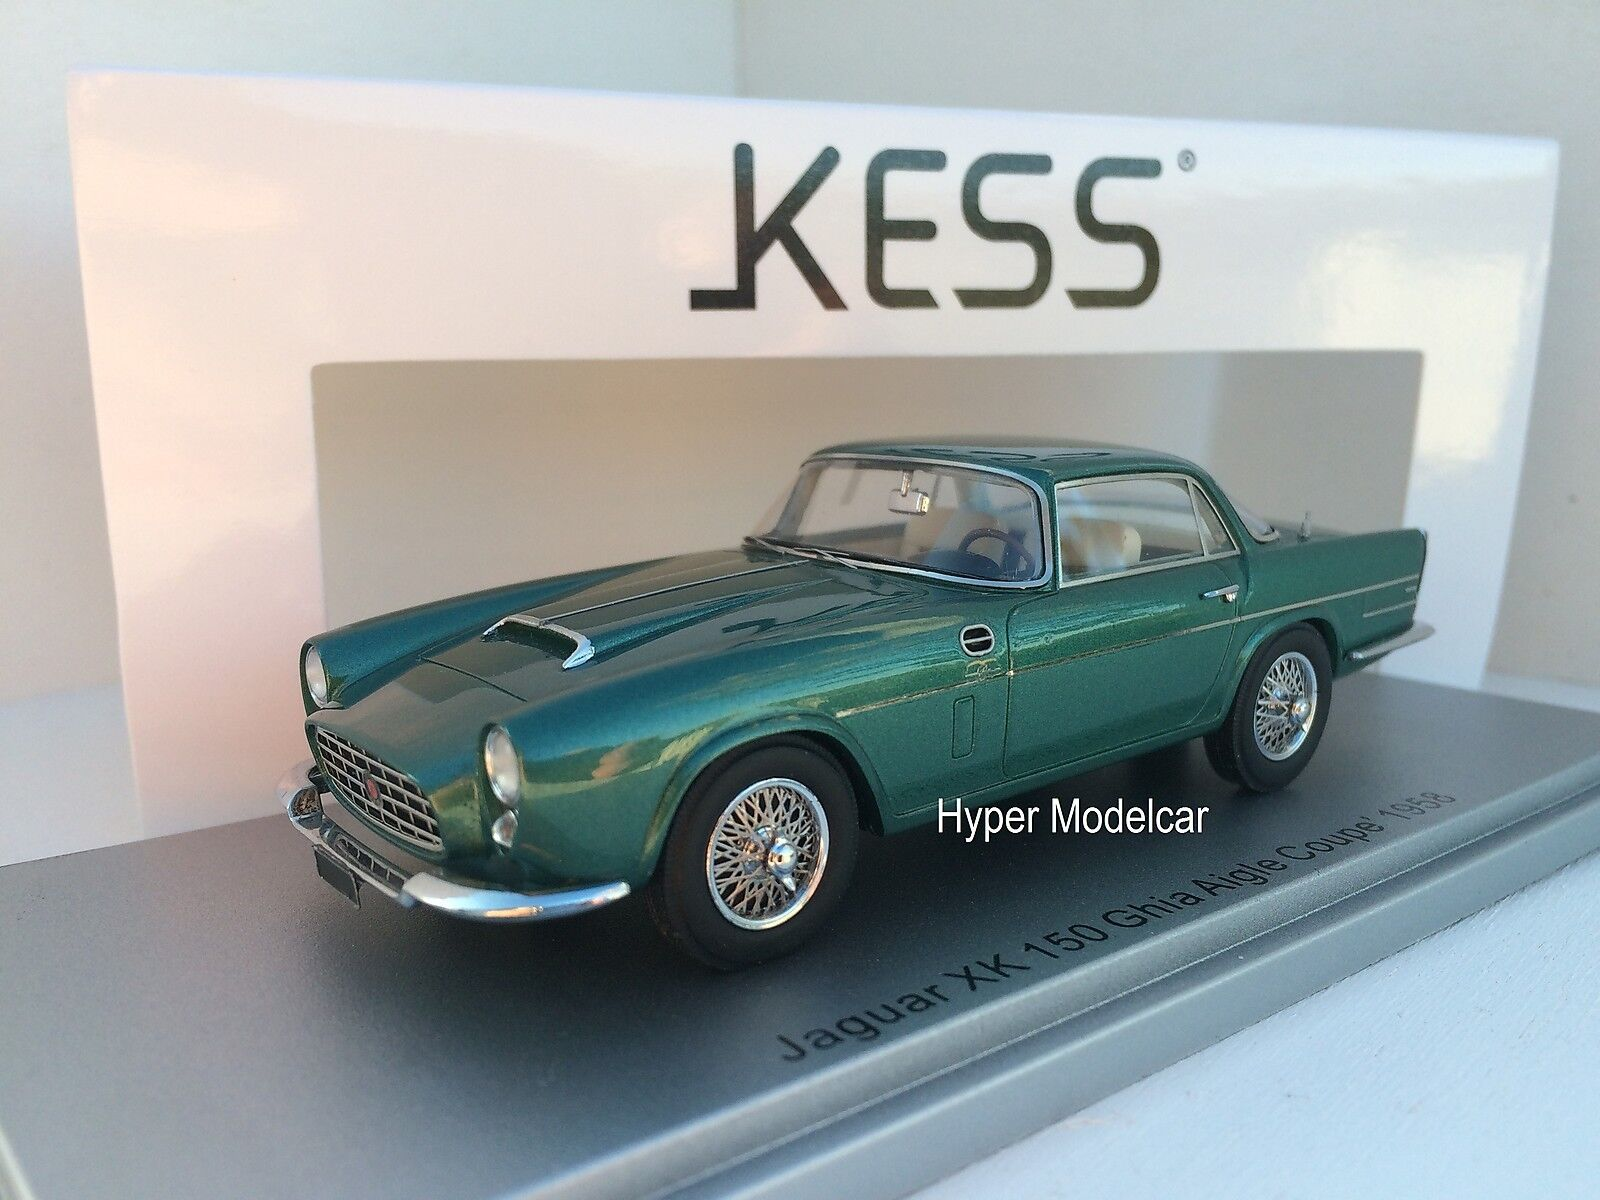 KESS MODEL 1 43 Jaguar XK150 Aigle Coupè 1958 Verden Met. Art. KE43029000